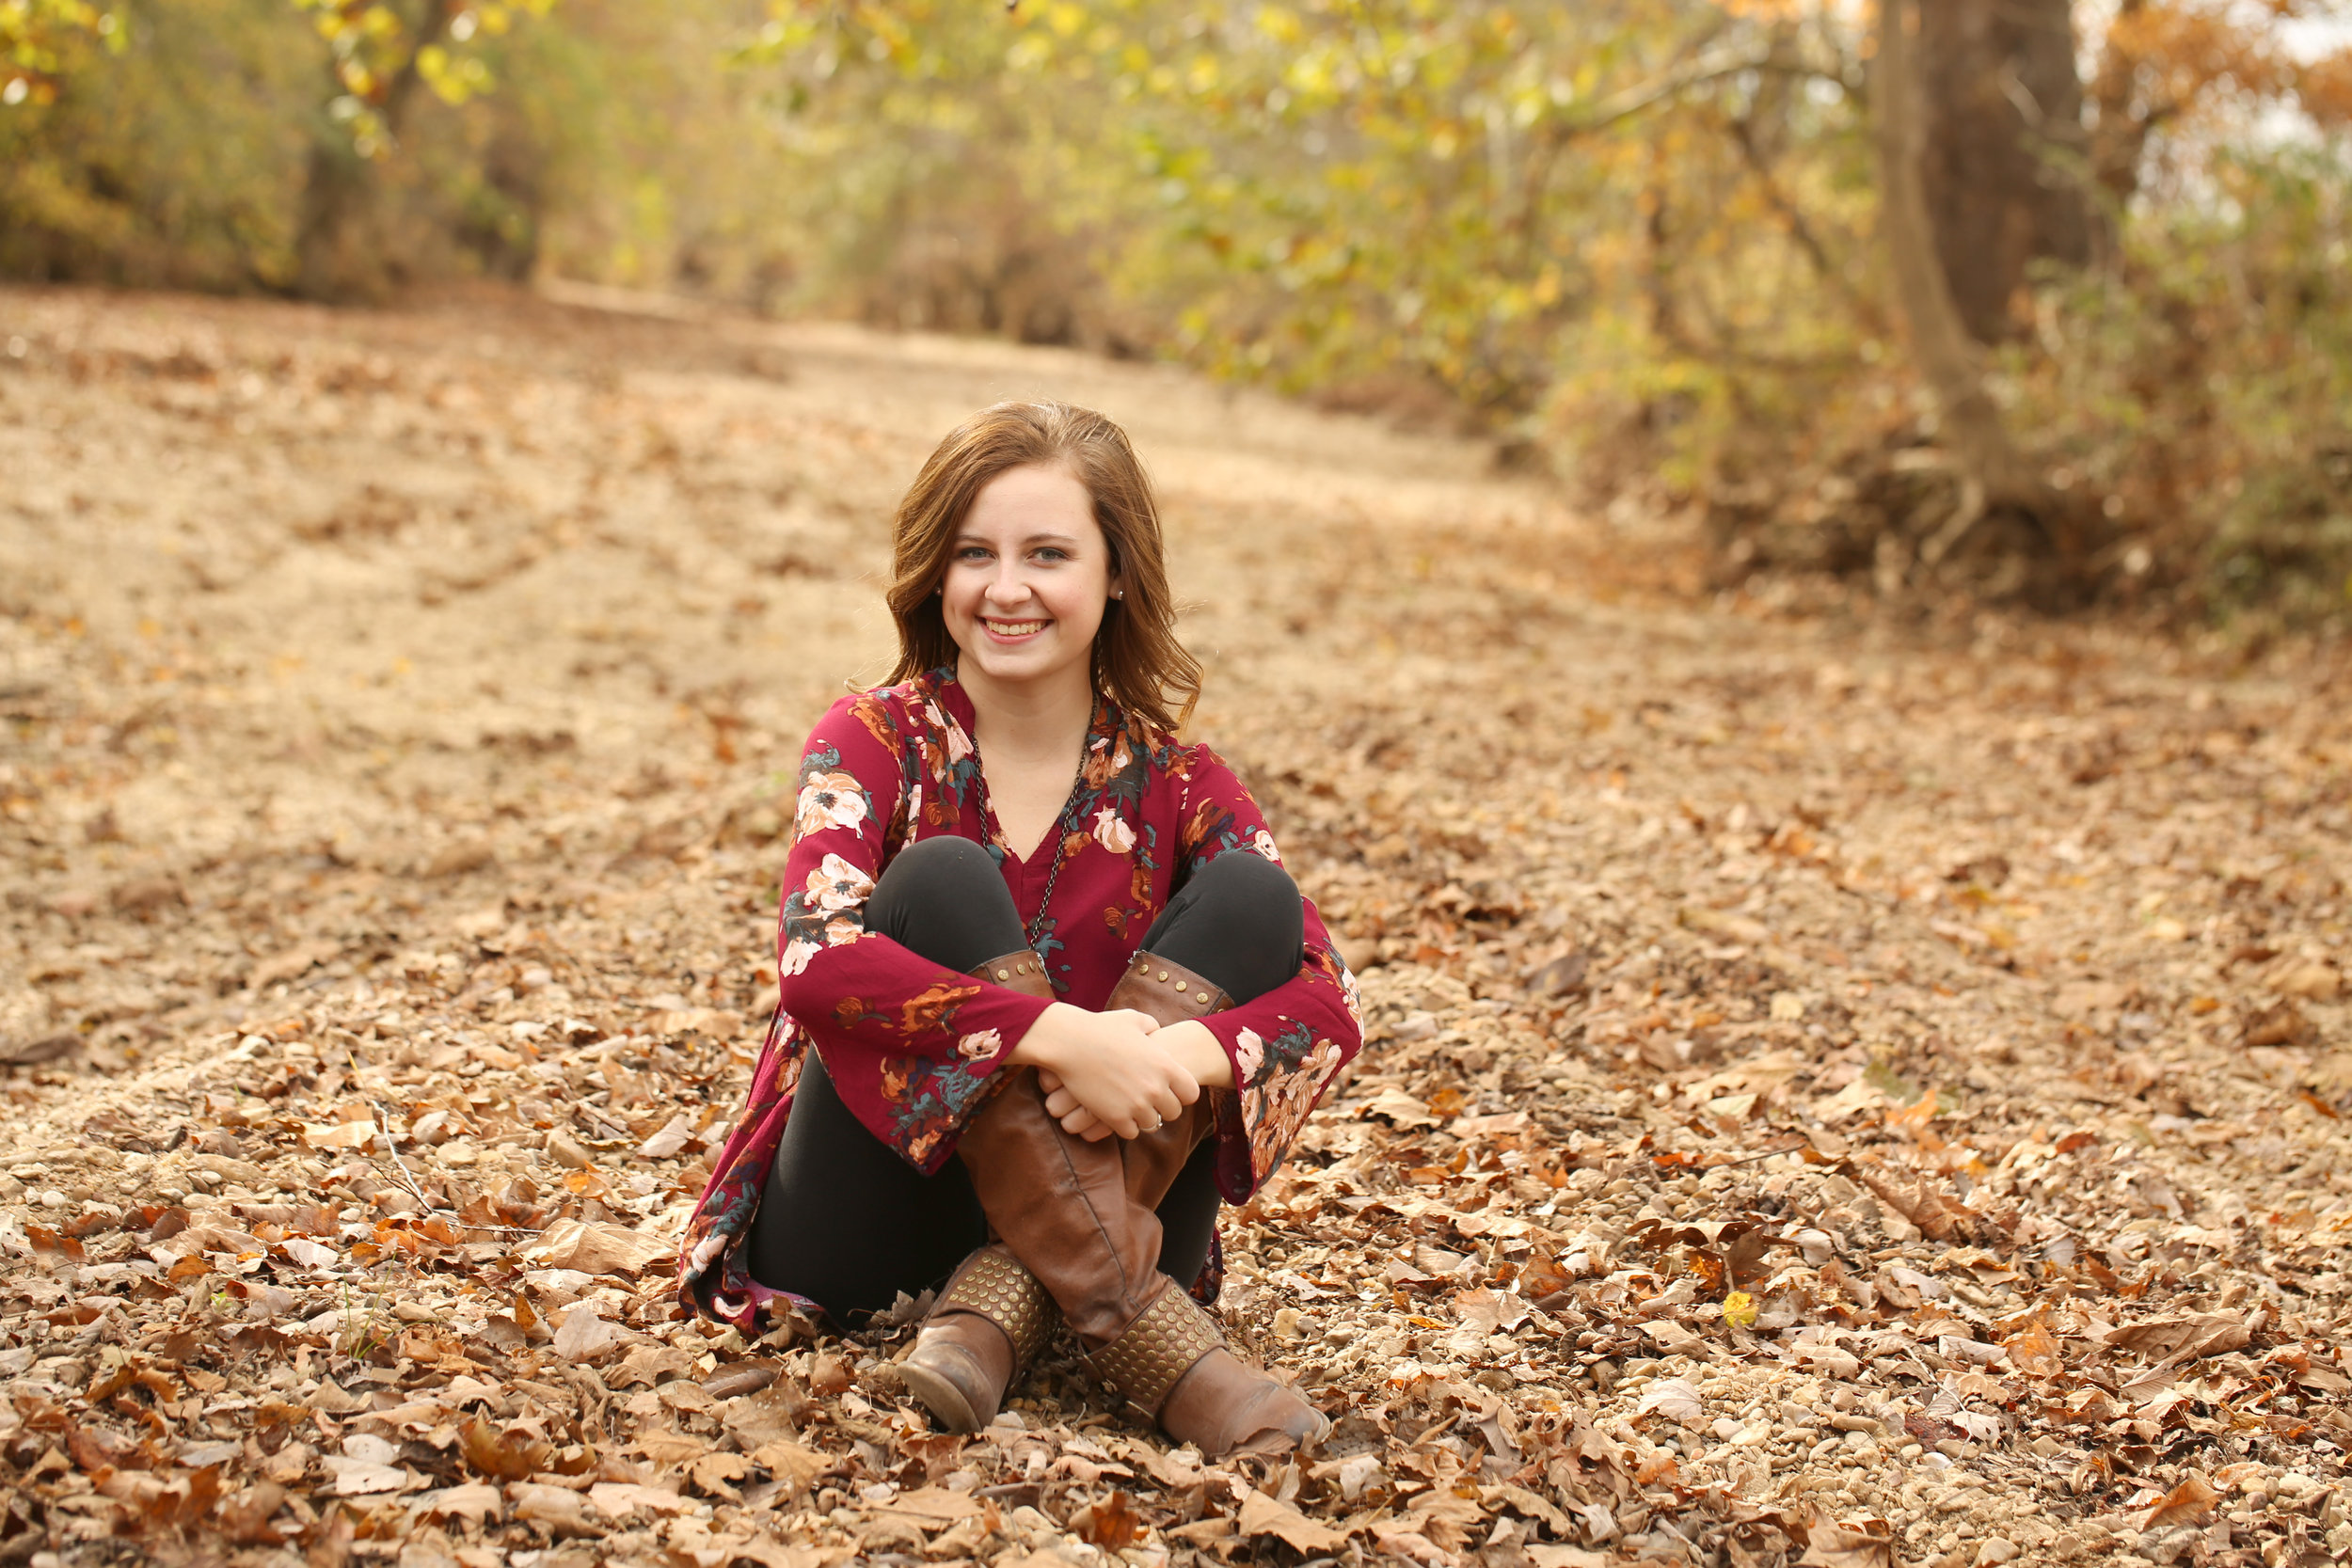 Location - Senior year is all about you! Let's make your shooting location a place that is perfect for you!The barn with your horses? The gym? The baseball diamond? A dance floor? Where ever you are comfortable, we will shoot there!